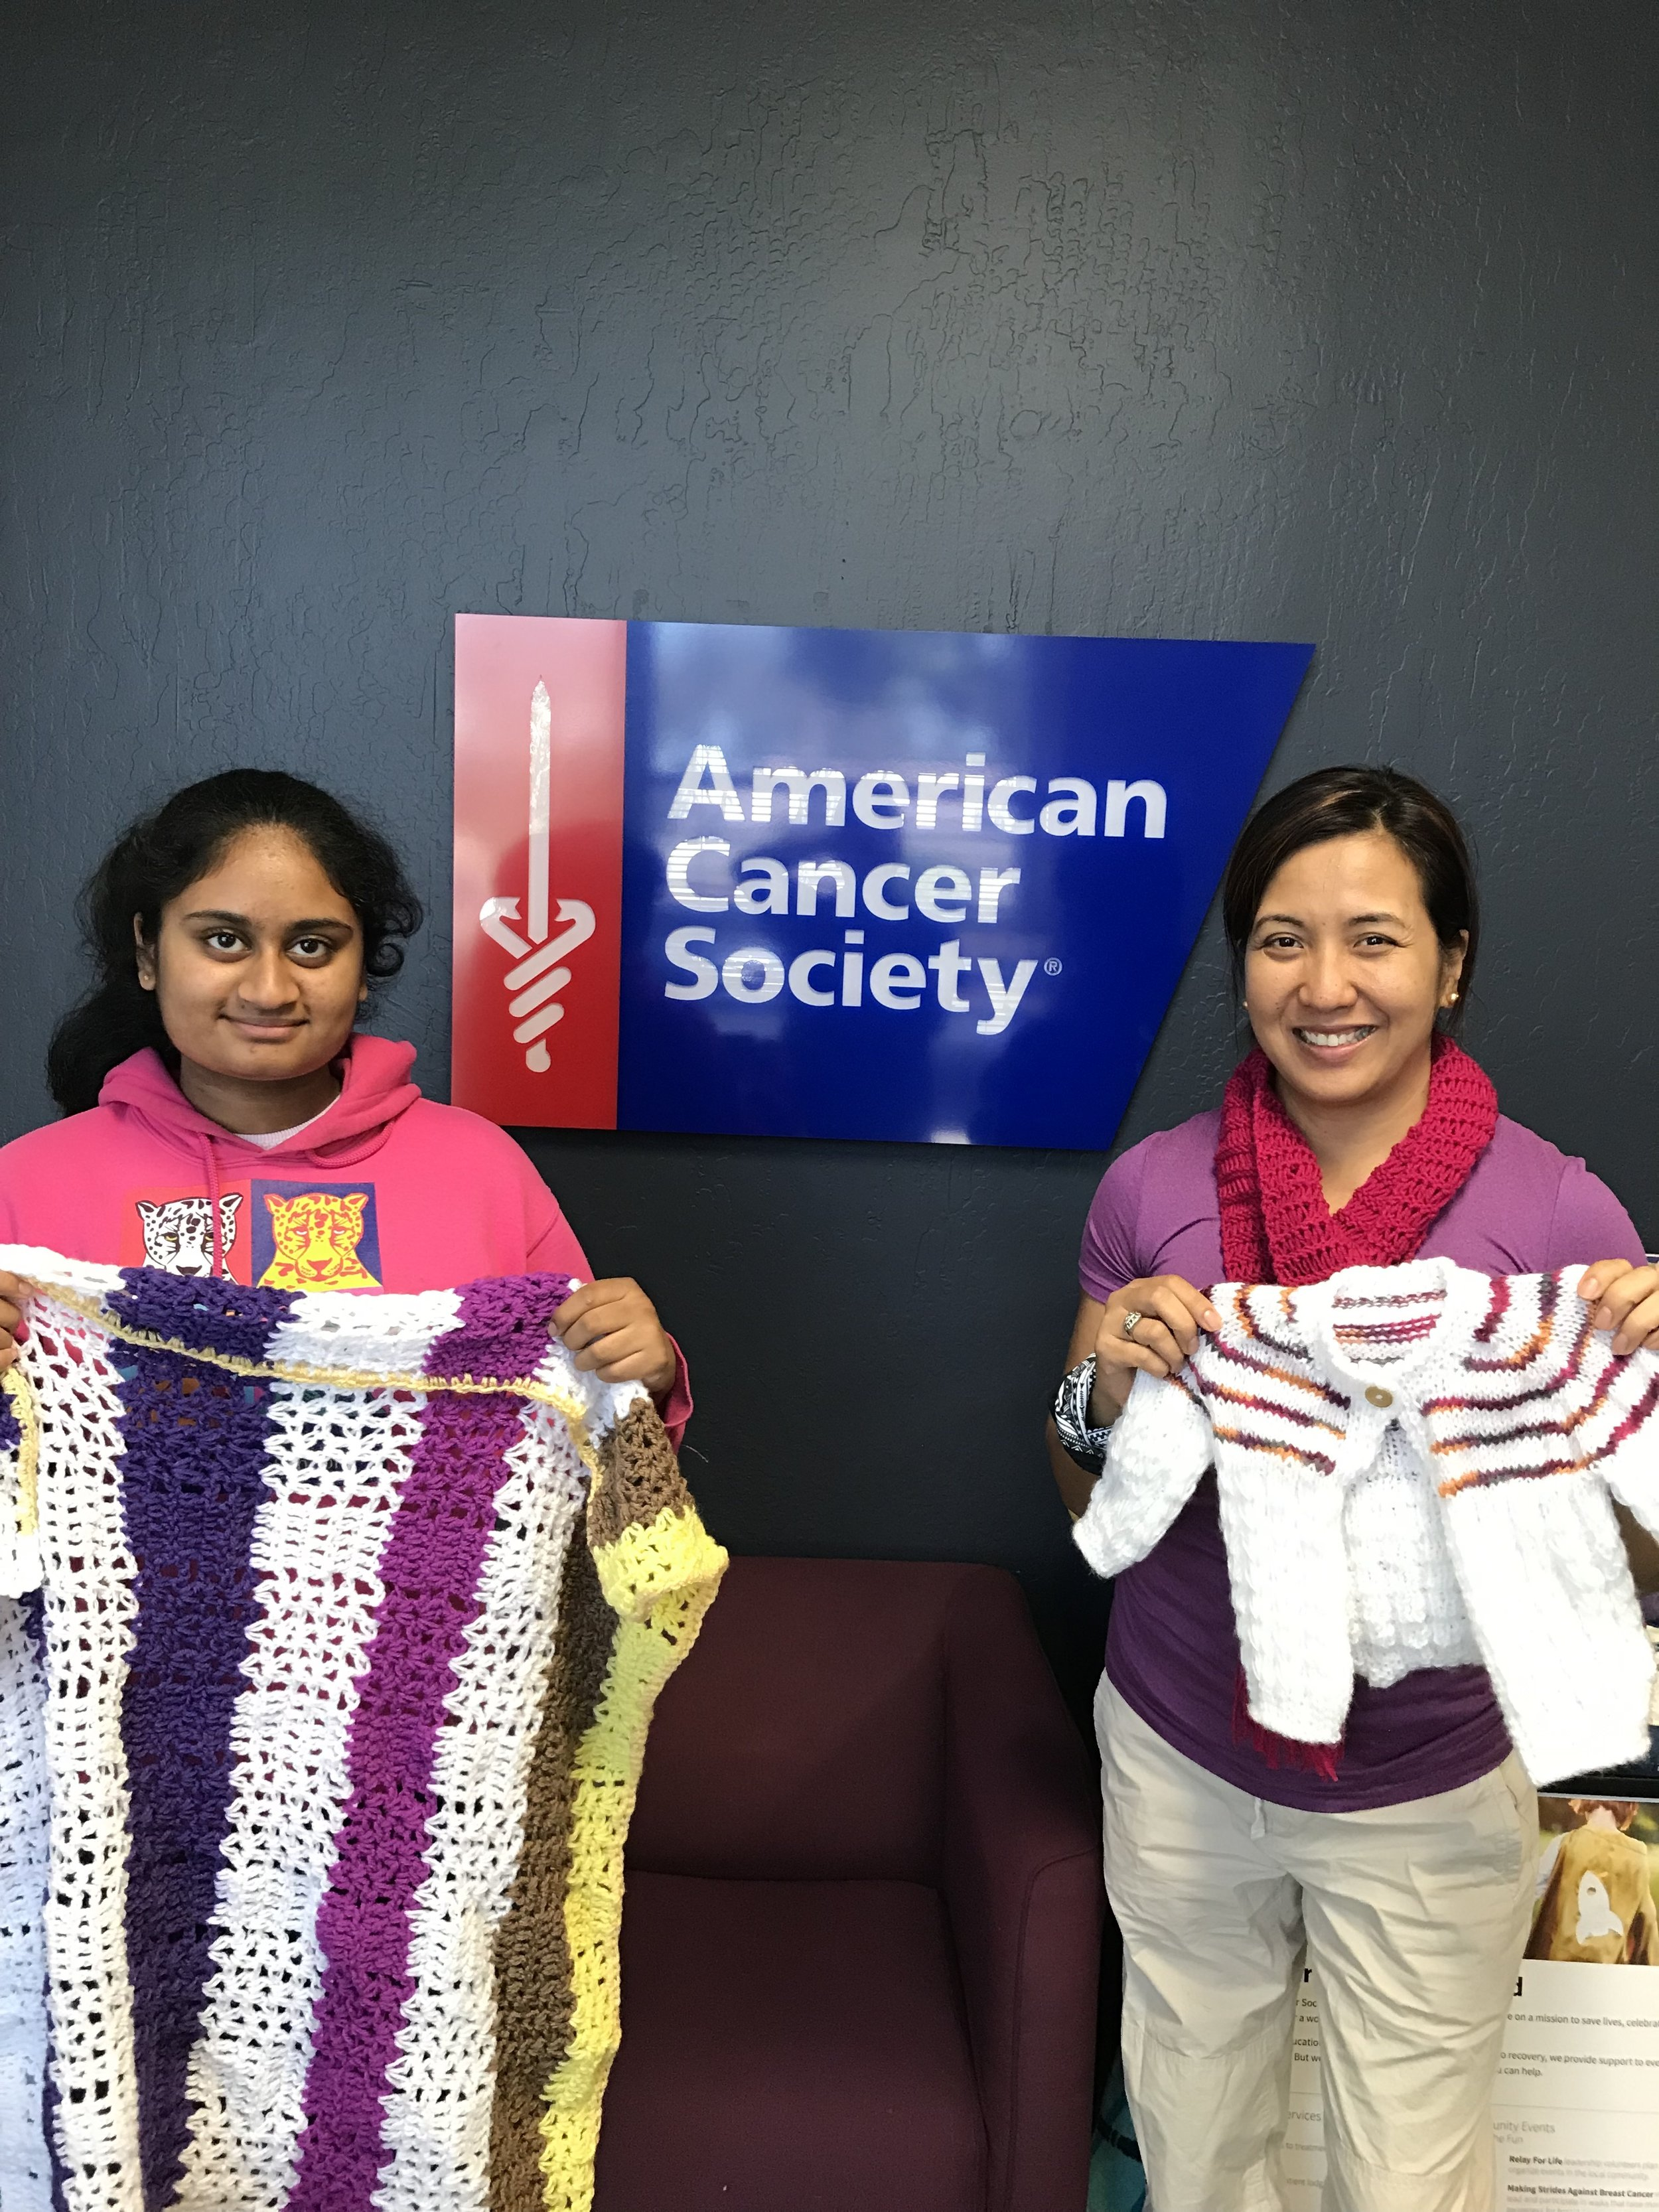 With Ms. April Morton, American Cancer Society